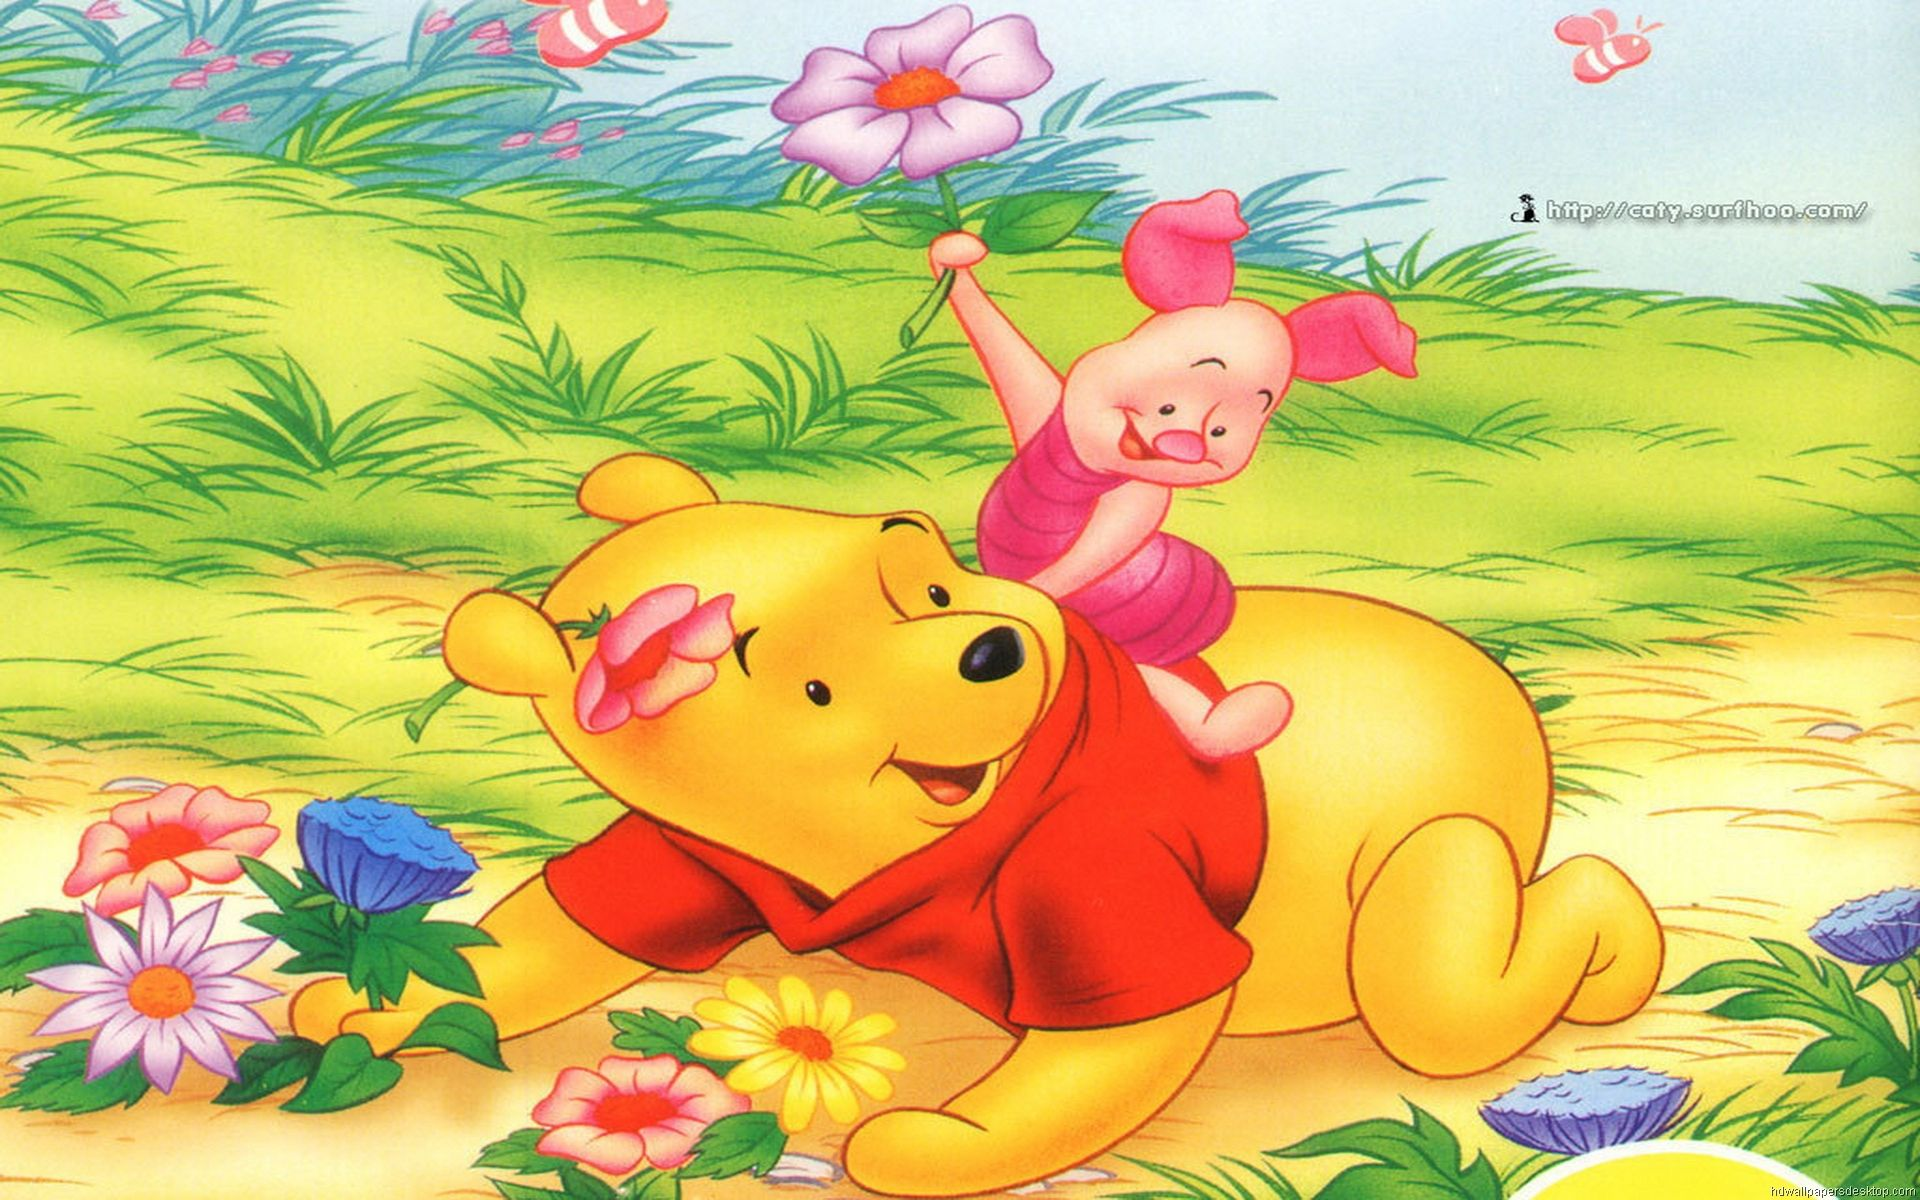 Amazing Wallpaper Halloween Winnie The Pooh - 94095d19c3203b25c5152c744c7d34fa  Collection_911348.jpg